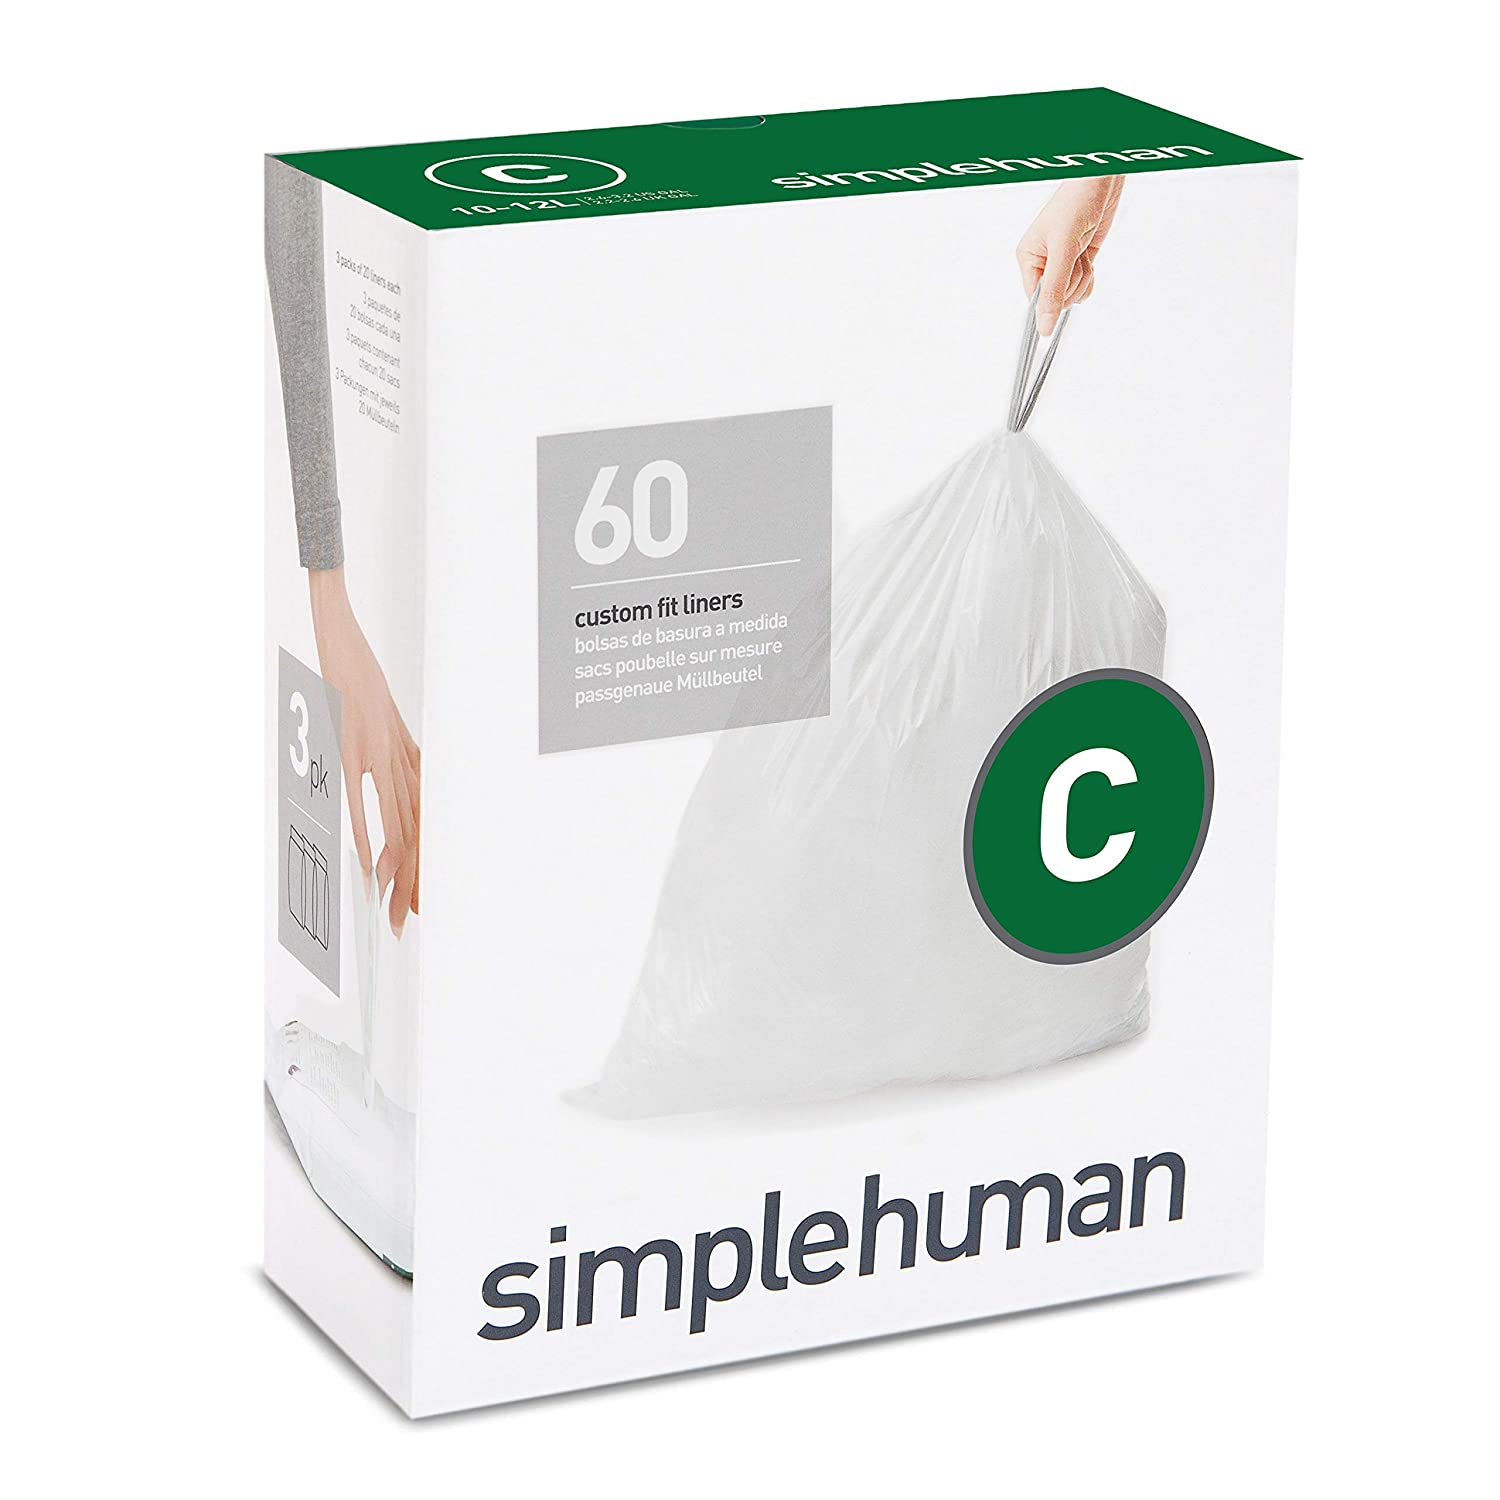 simplehuman Code C Custom Fit Drawstring Trash Bags, 10-12 Liter / 2.6-3.2 Gallon, 3 Refill Packs (60 Count)